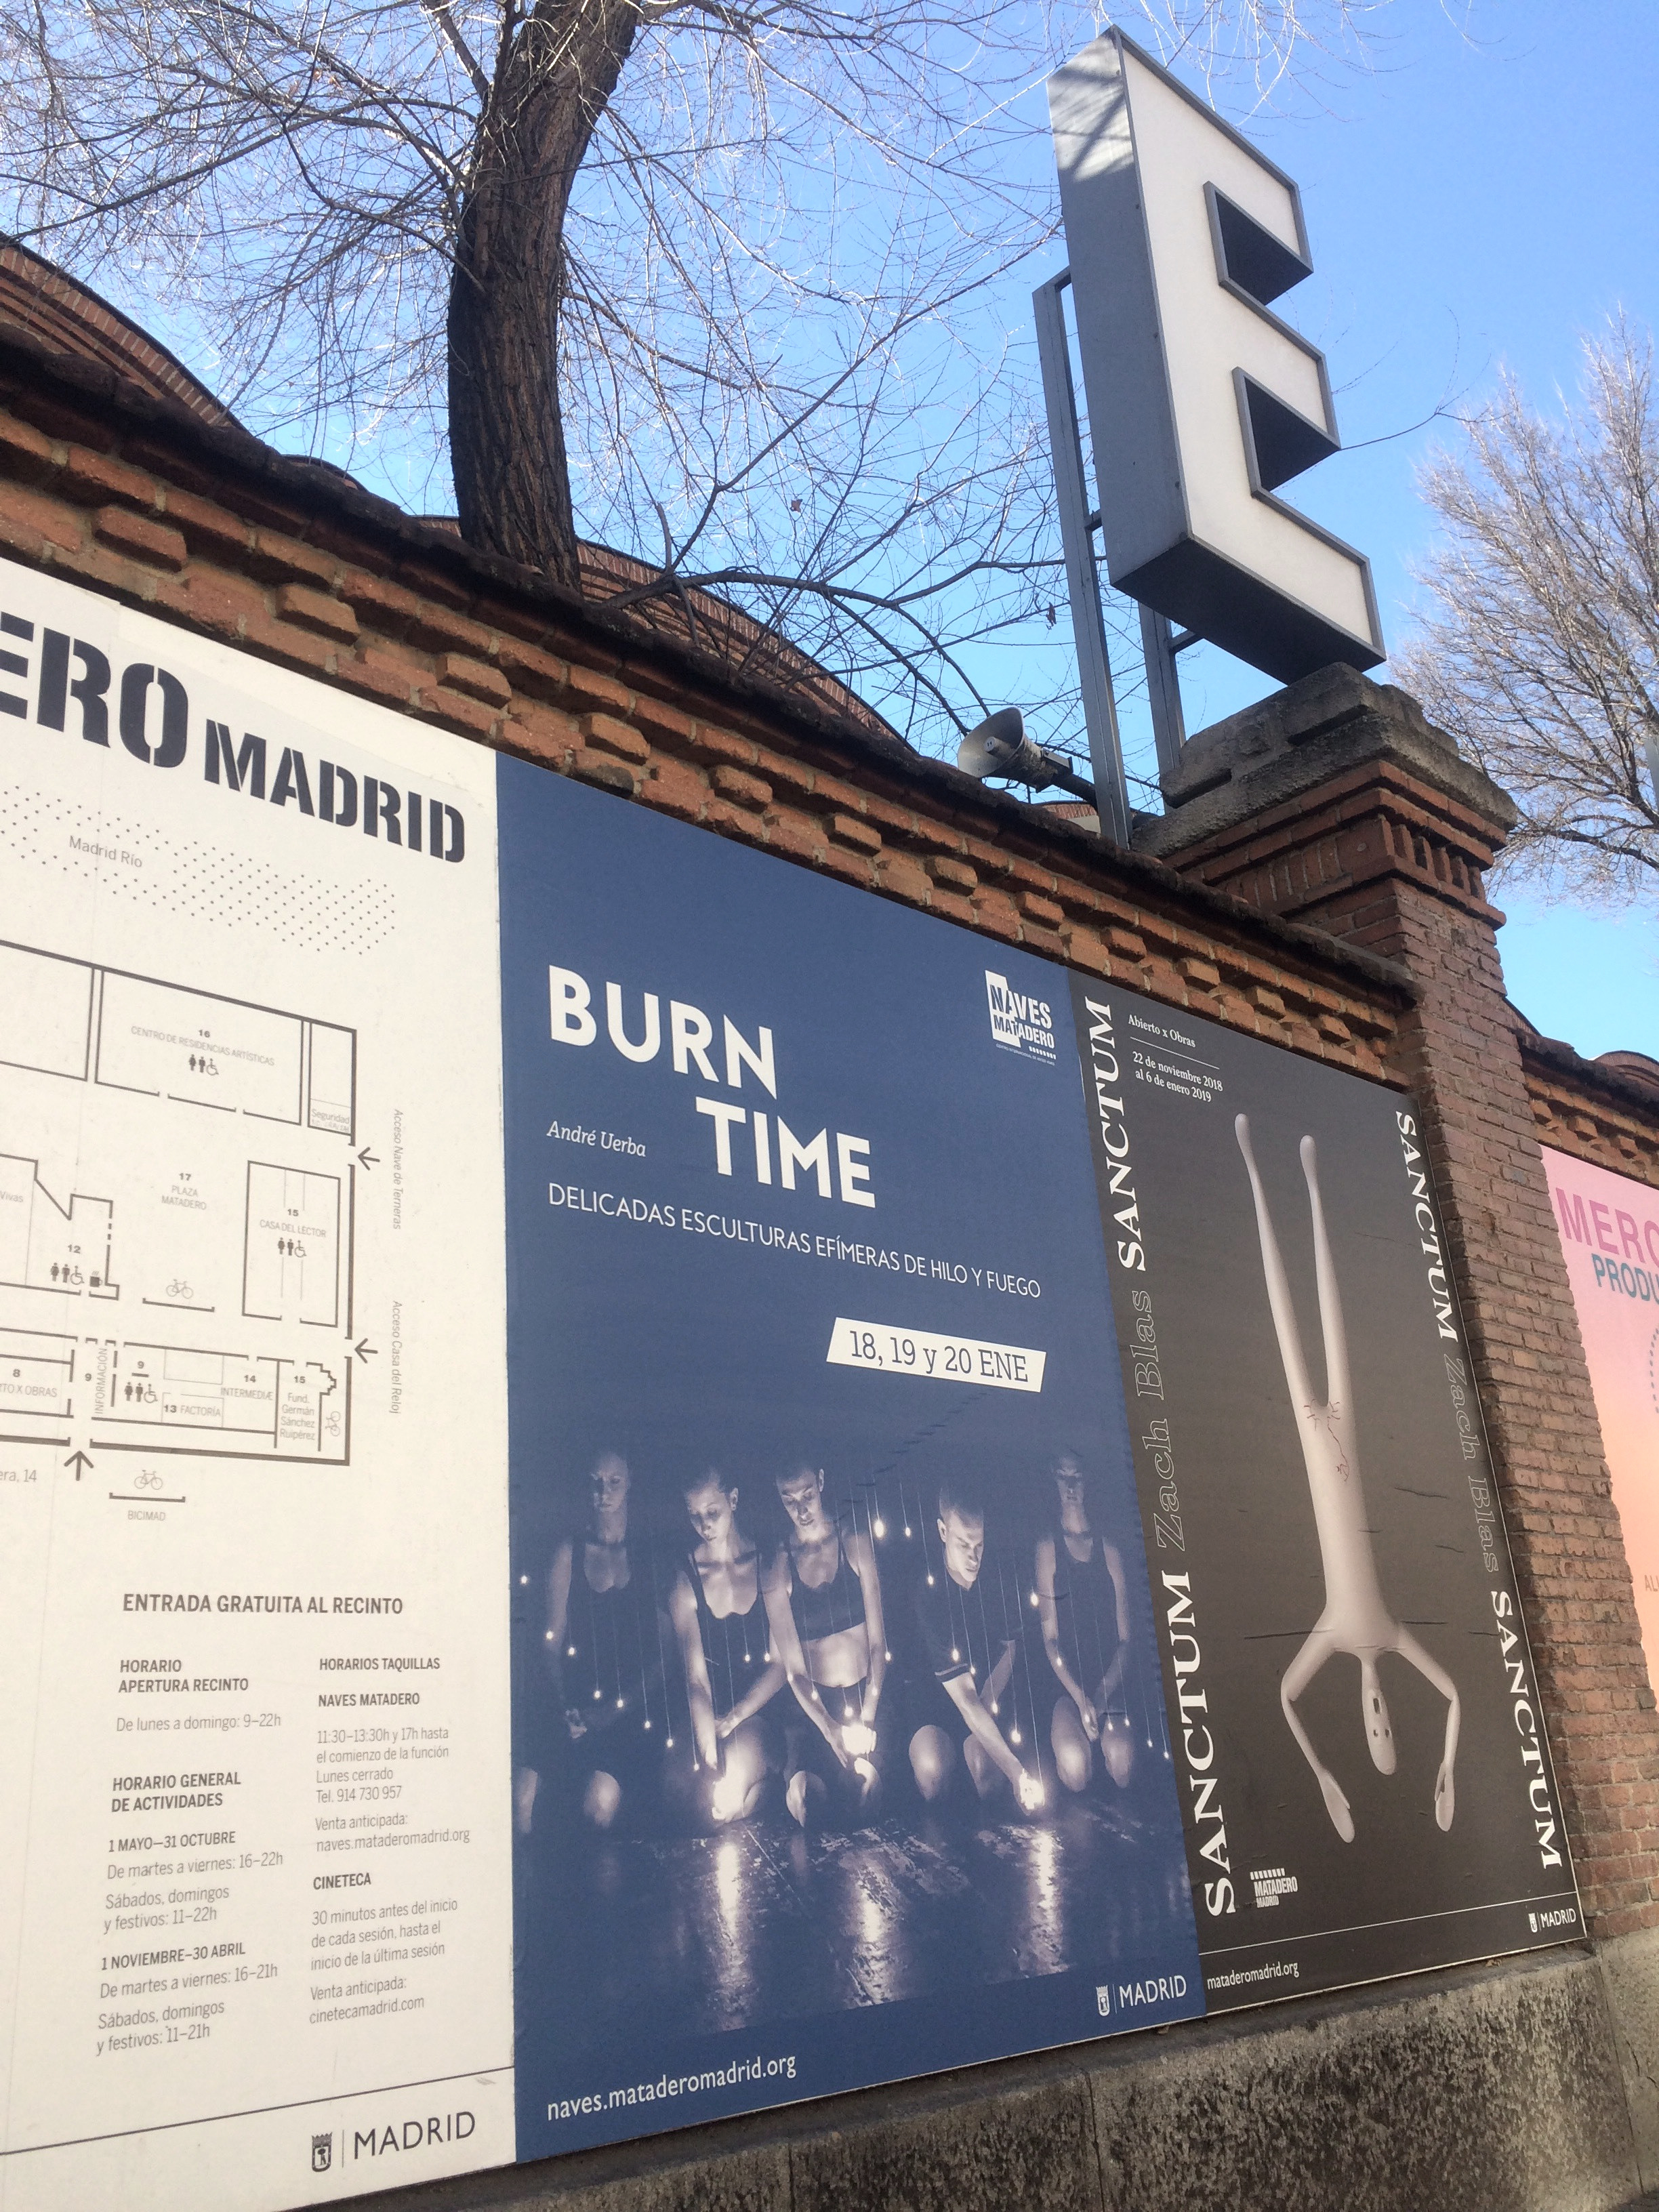 Burn Time Madrid, André Uerba, Naves Matadero